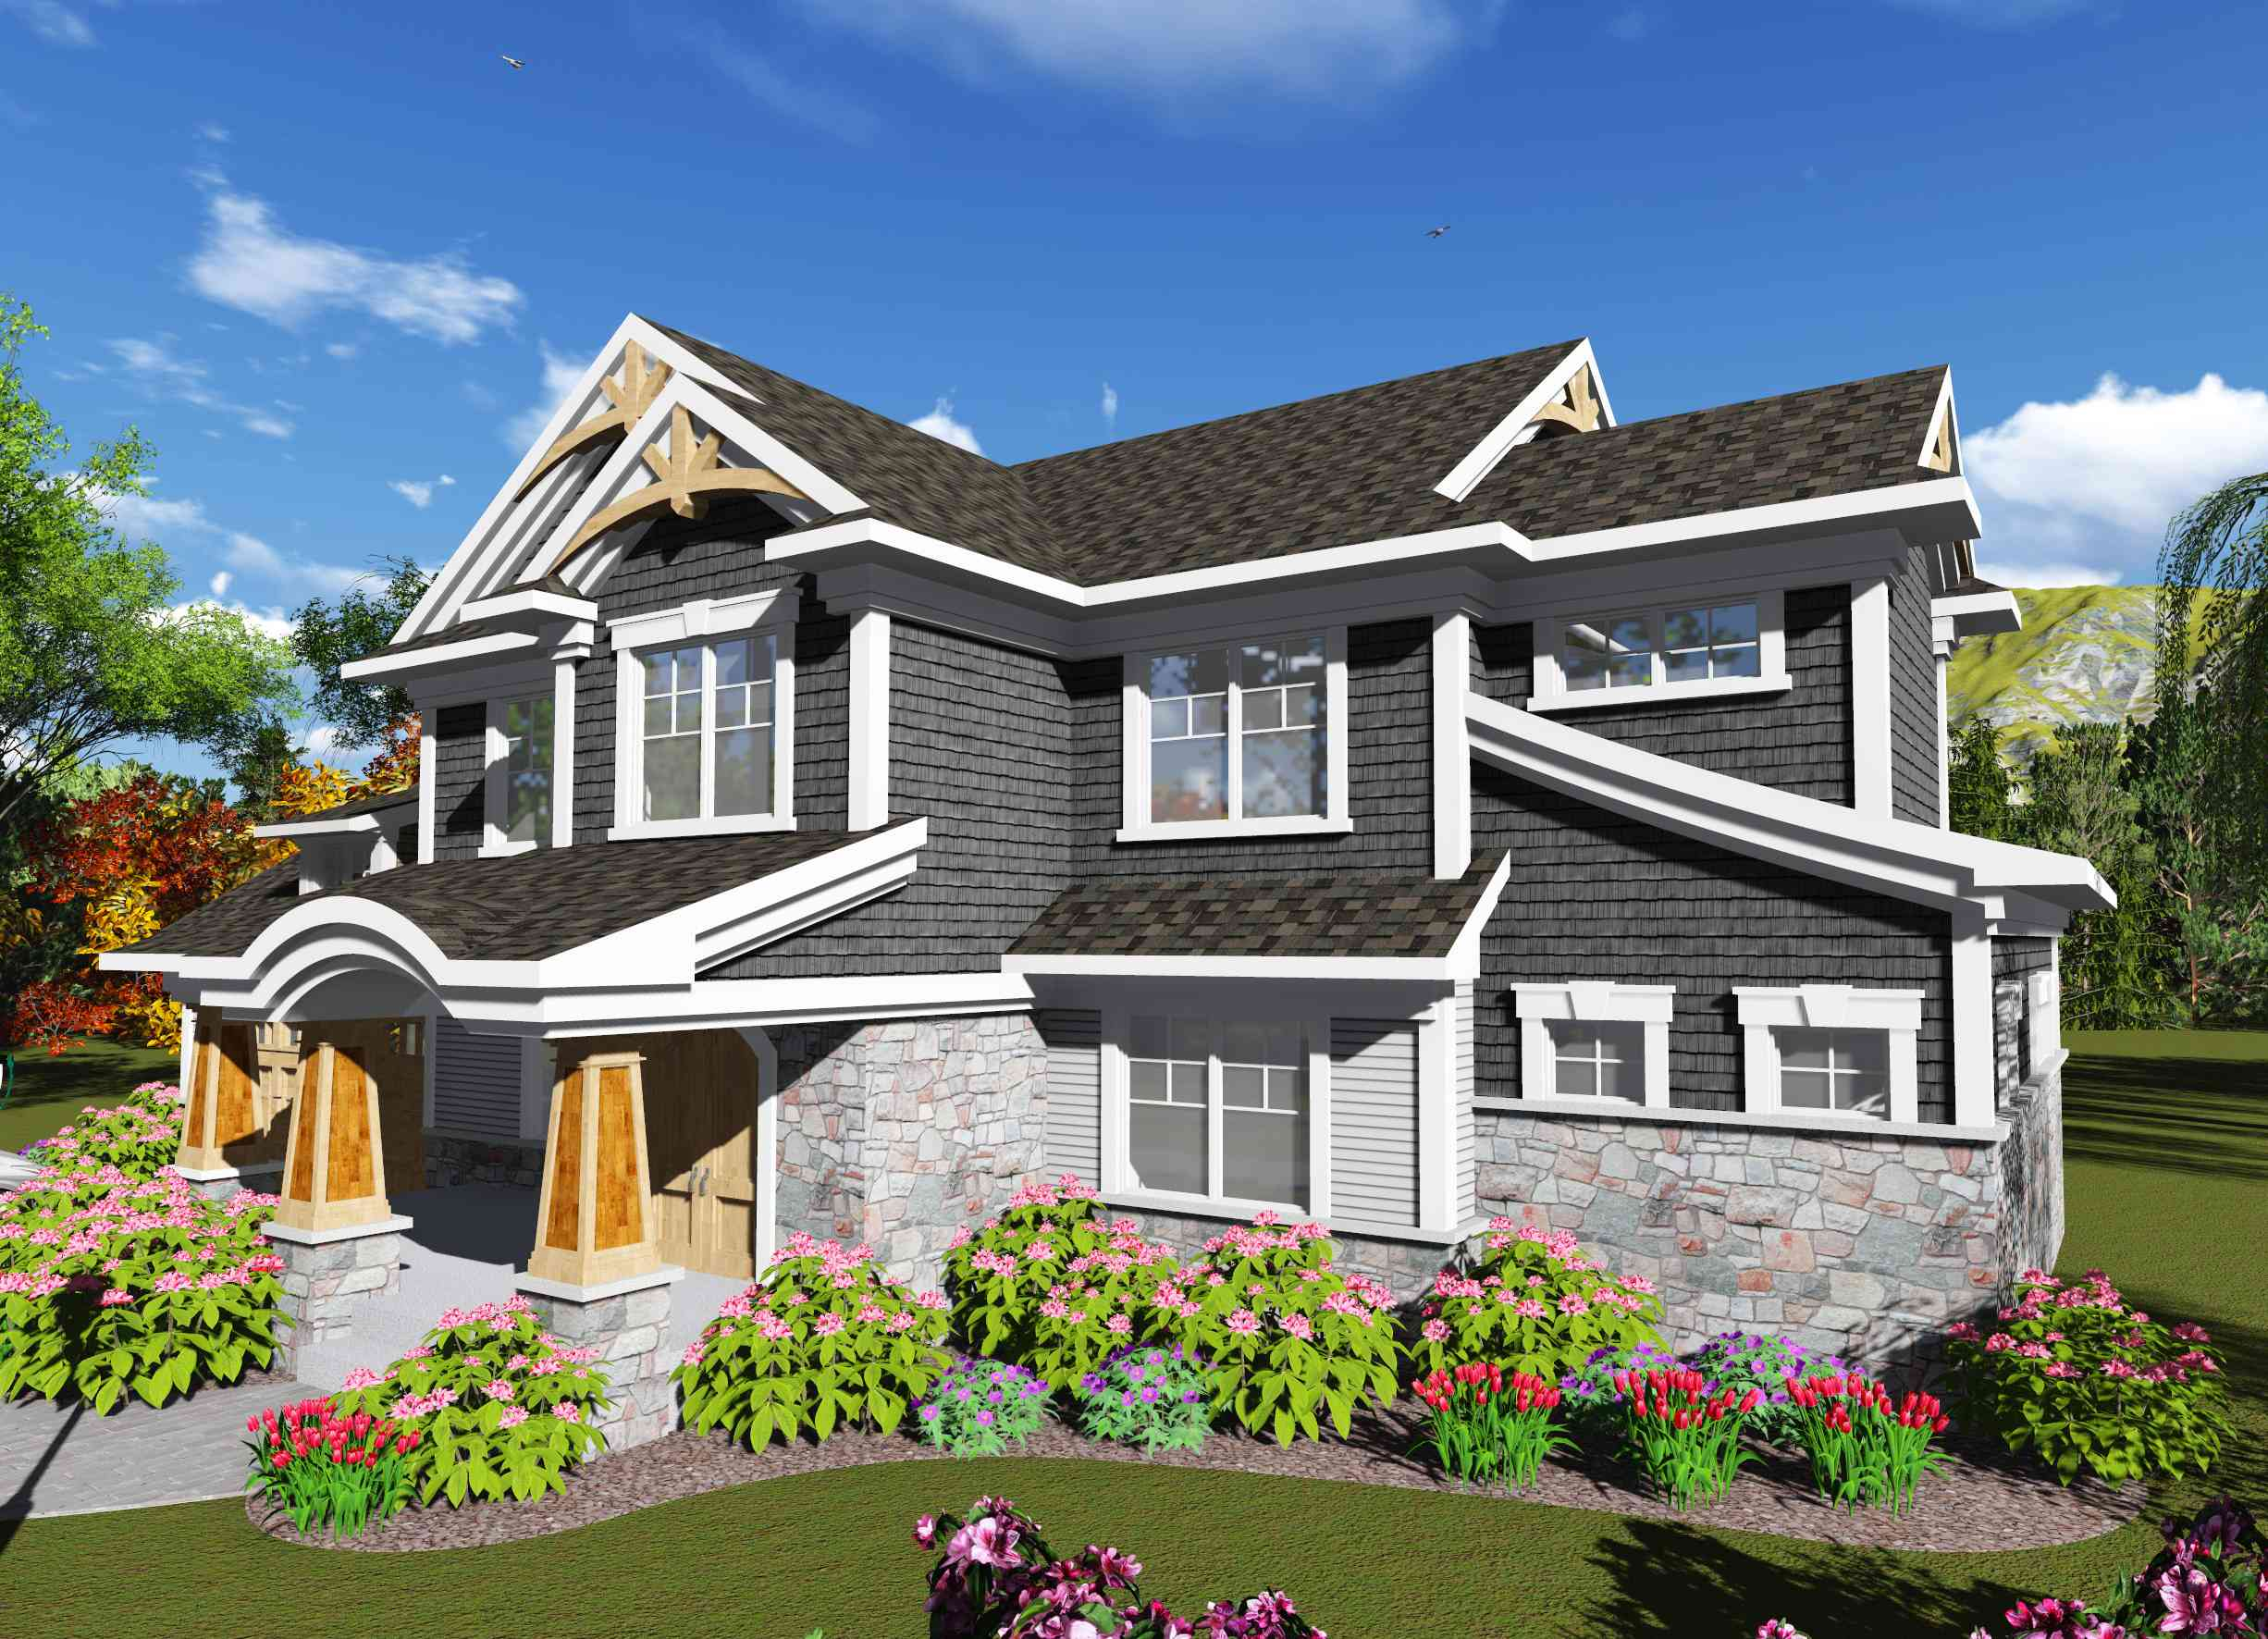 2 Story Craftsman With 4 Bedrooms 89993ah Architectural Designs House Plans